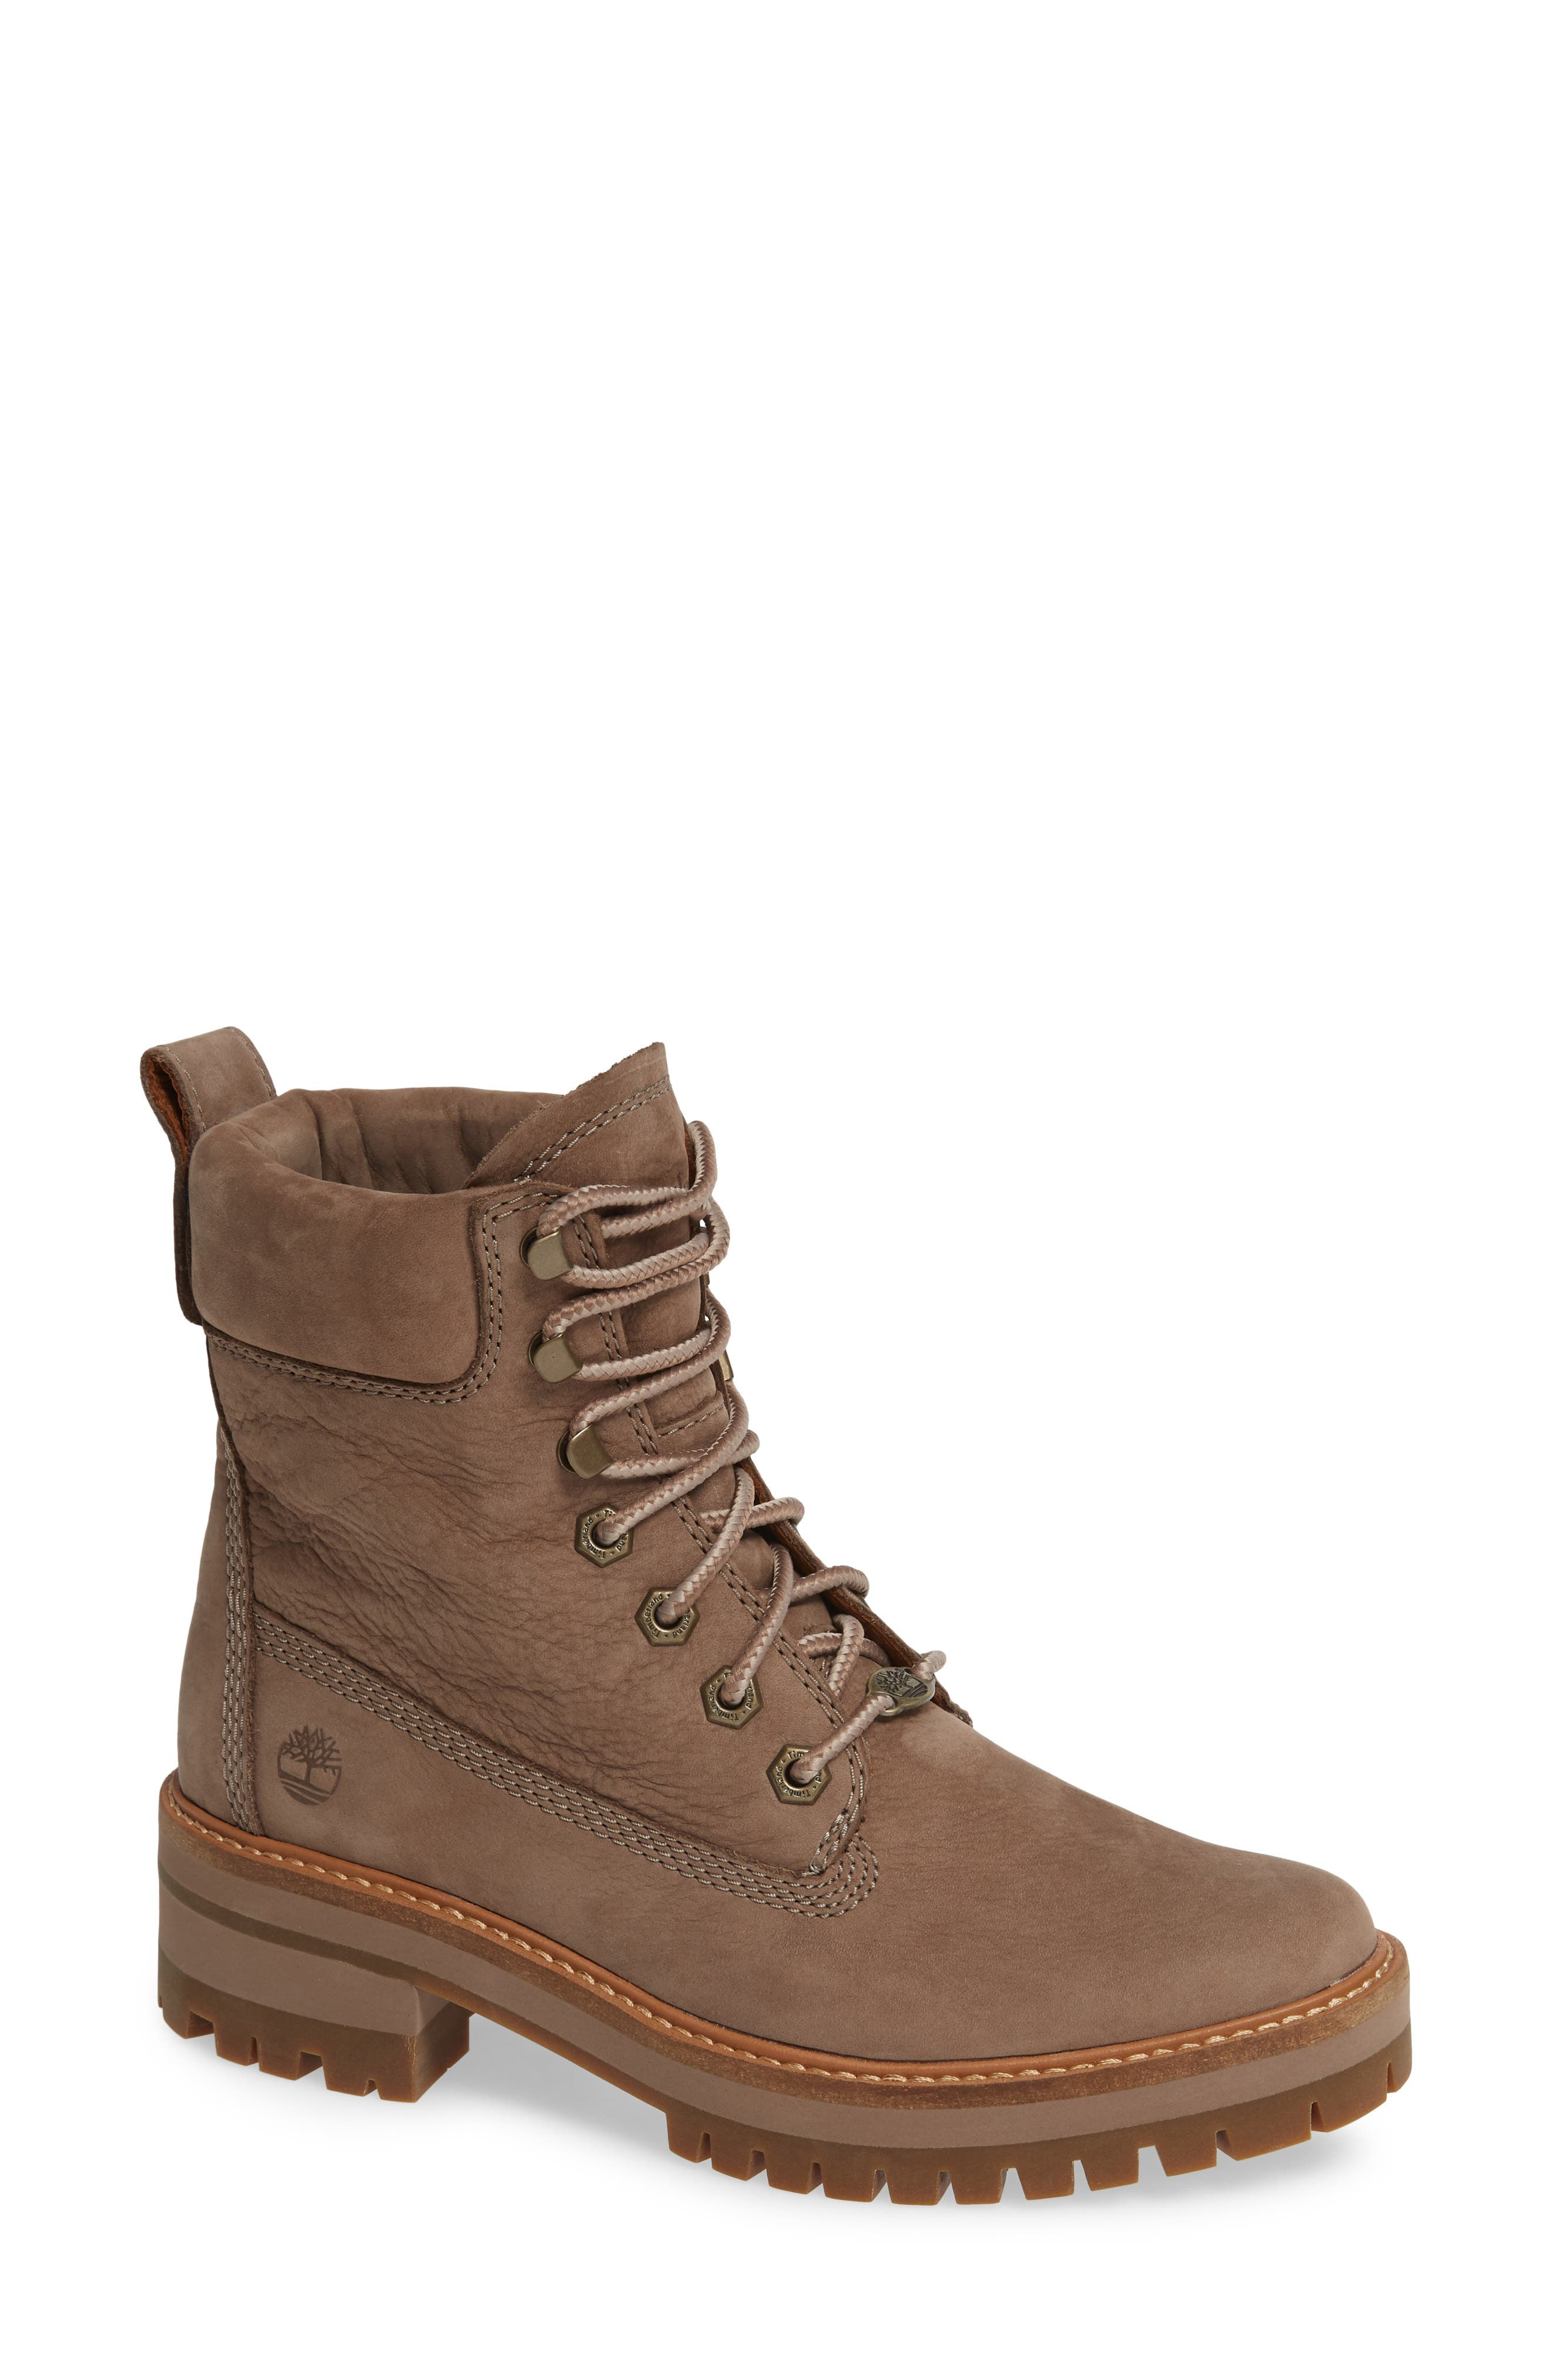 Courmayeur Valley Water Resistant Hiking Boot,                         Main,                         color, TAUPE GREY NUBUCK